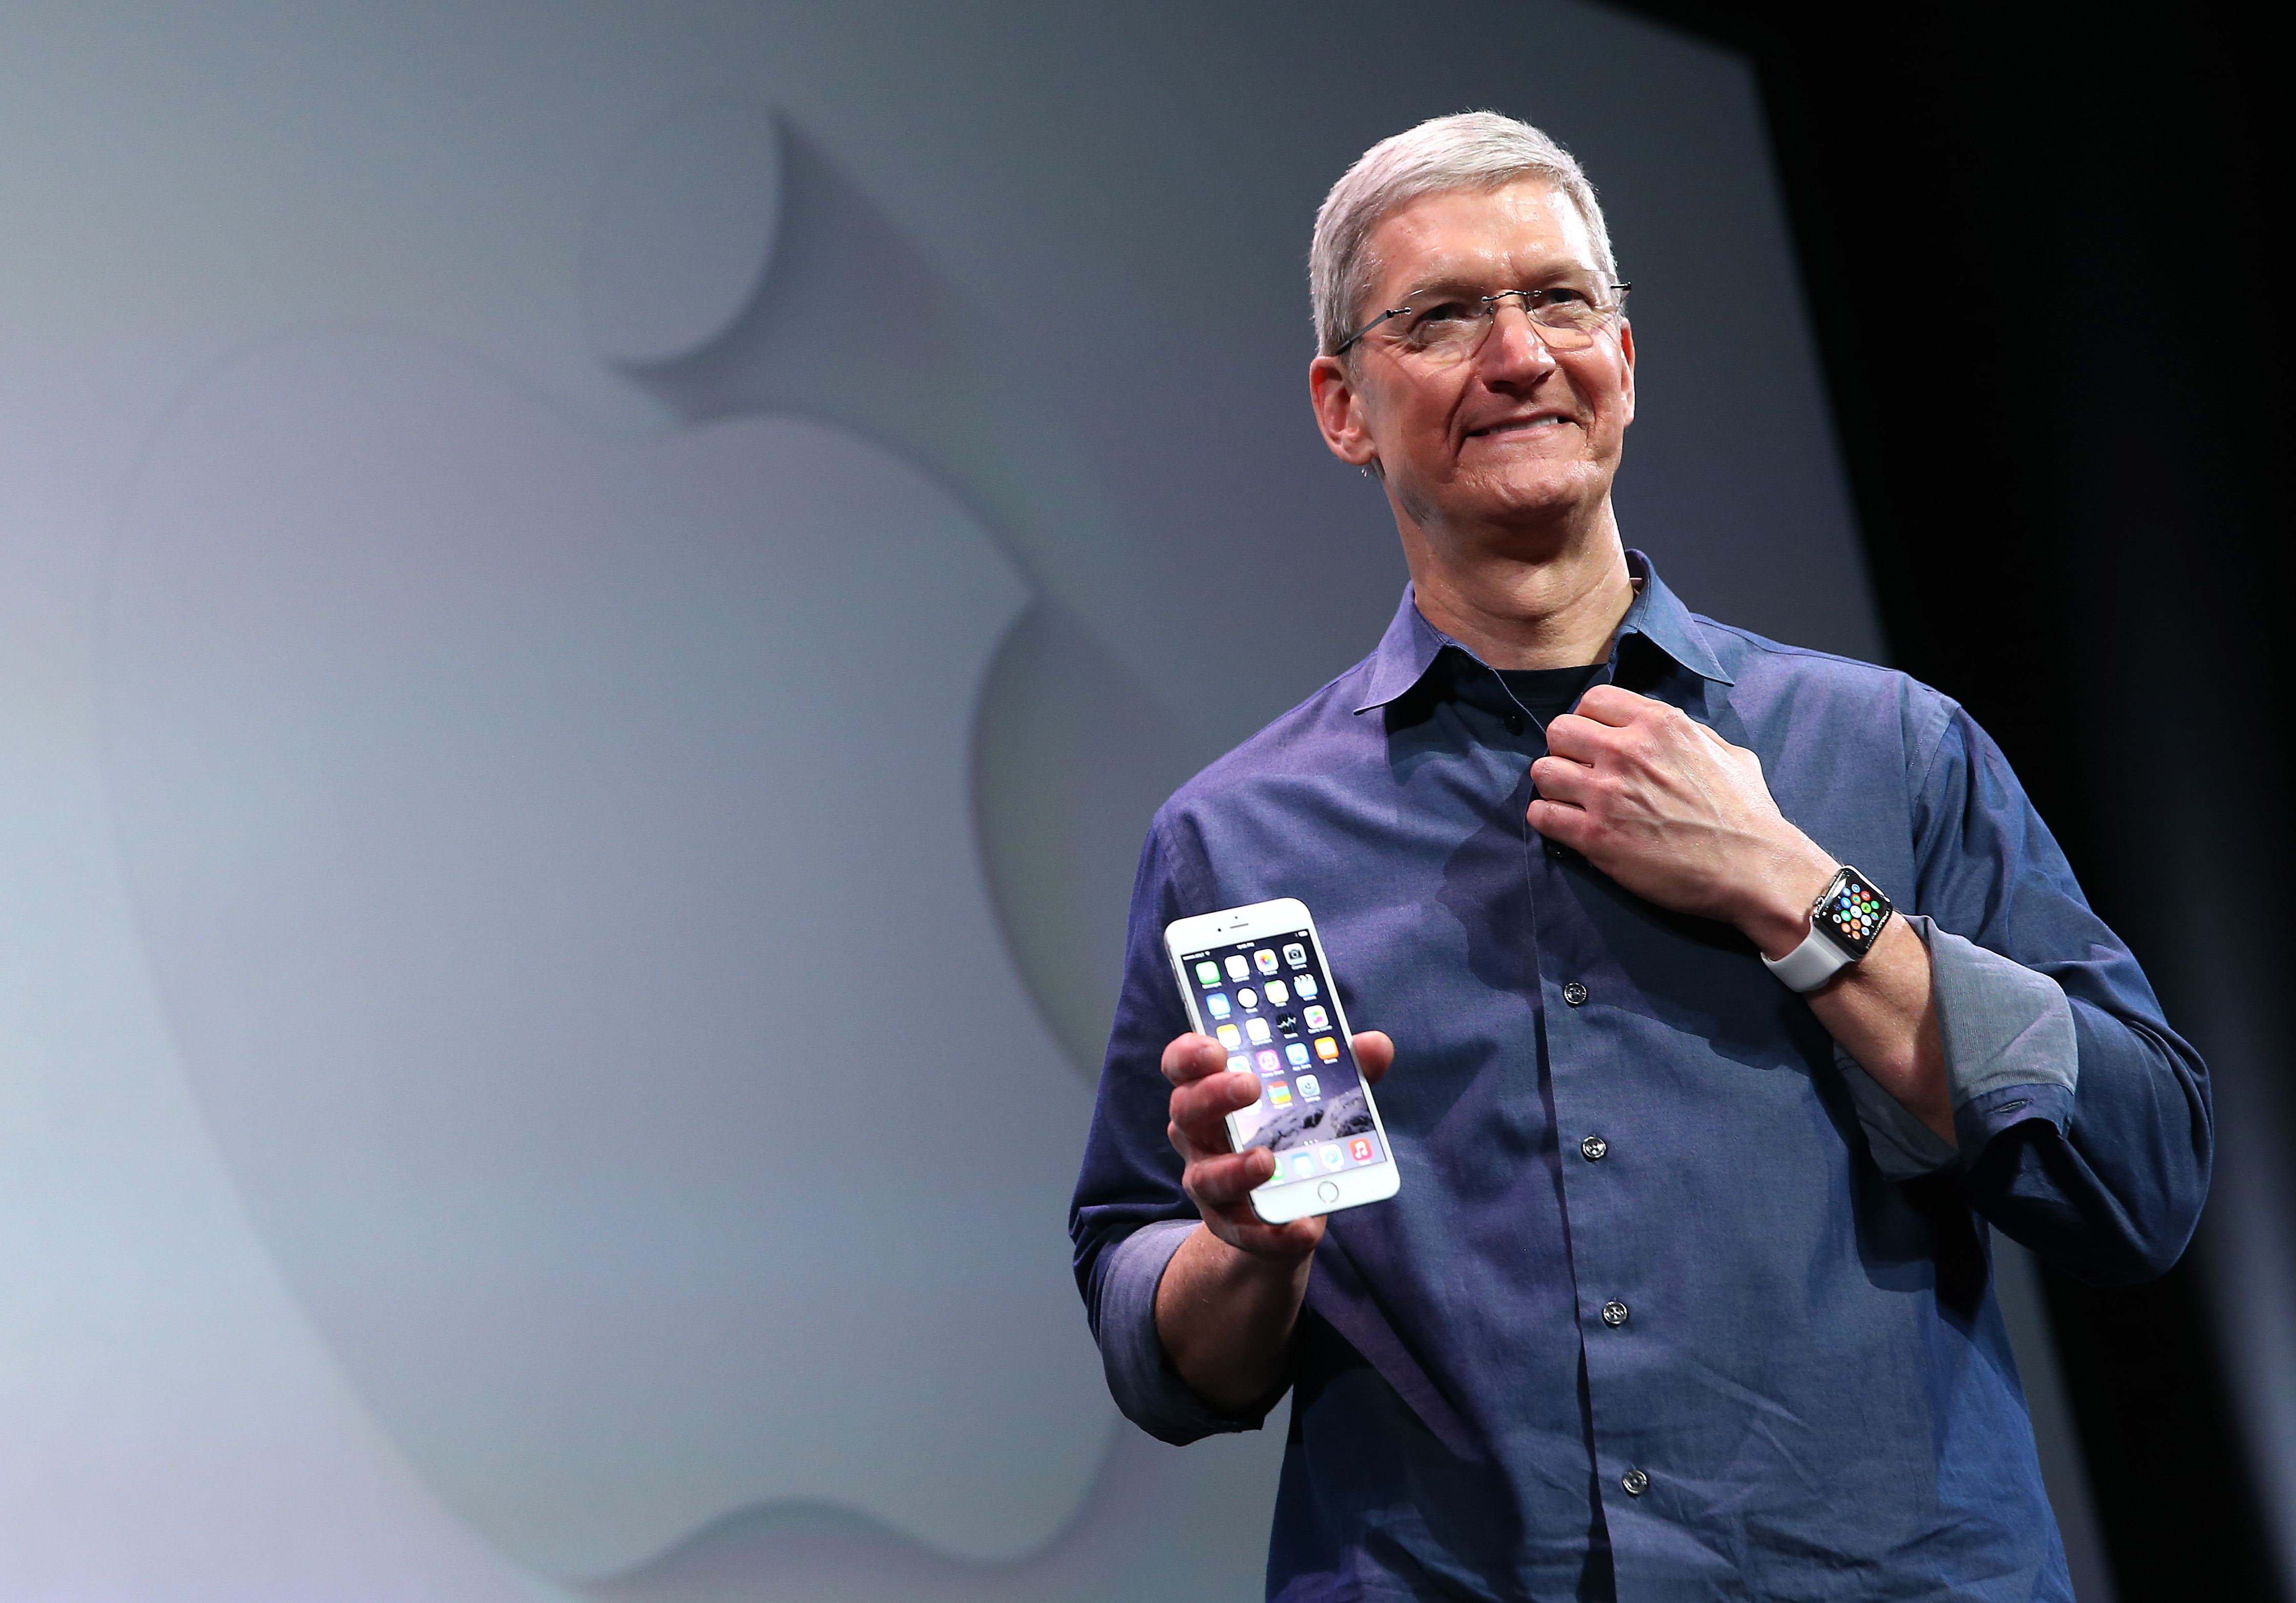 Apple CEO Tim Cook shows off the new iPhone 6 and the Apple Watch during an Apple special event at the Flint Center for the Performing Arts on Sept. 9, 2014 in Cupertino, Calif.